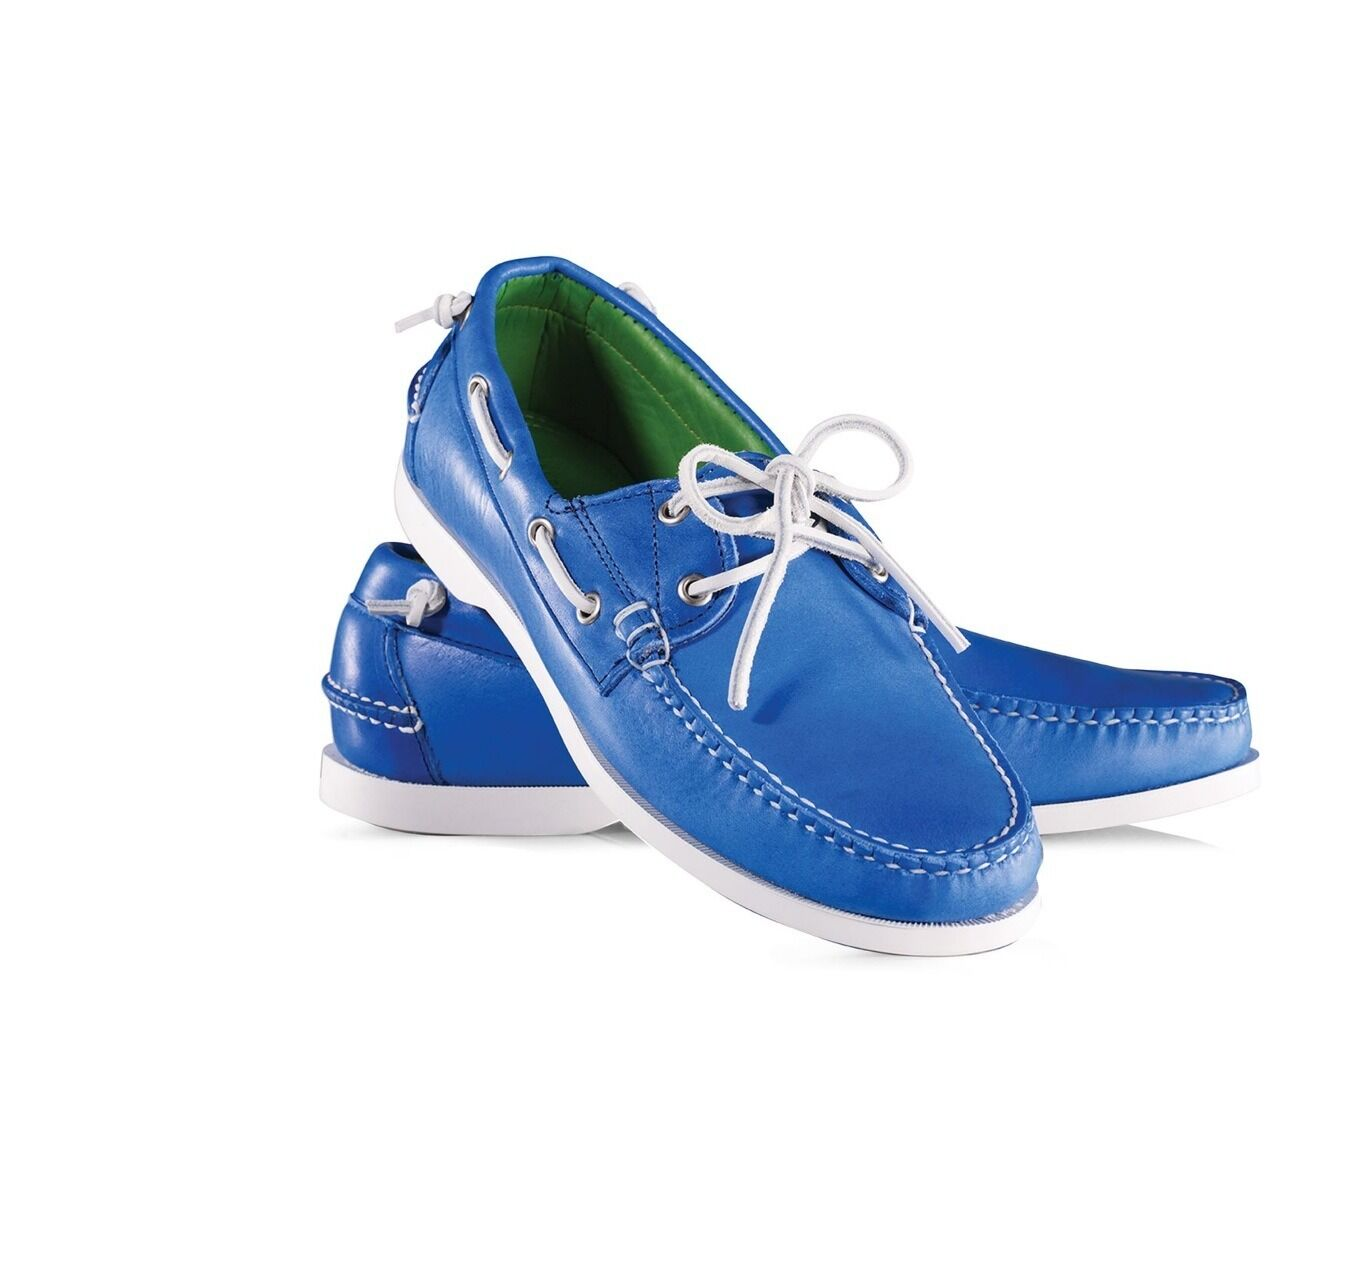 NIB Ralph Lauren Telford II Leather Boat shoes Made in USA Size 11D